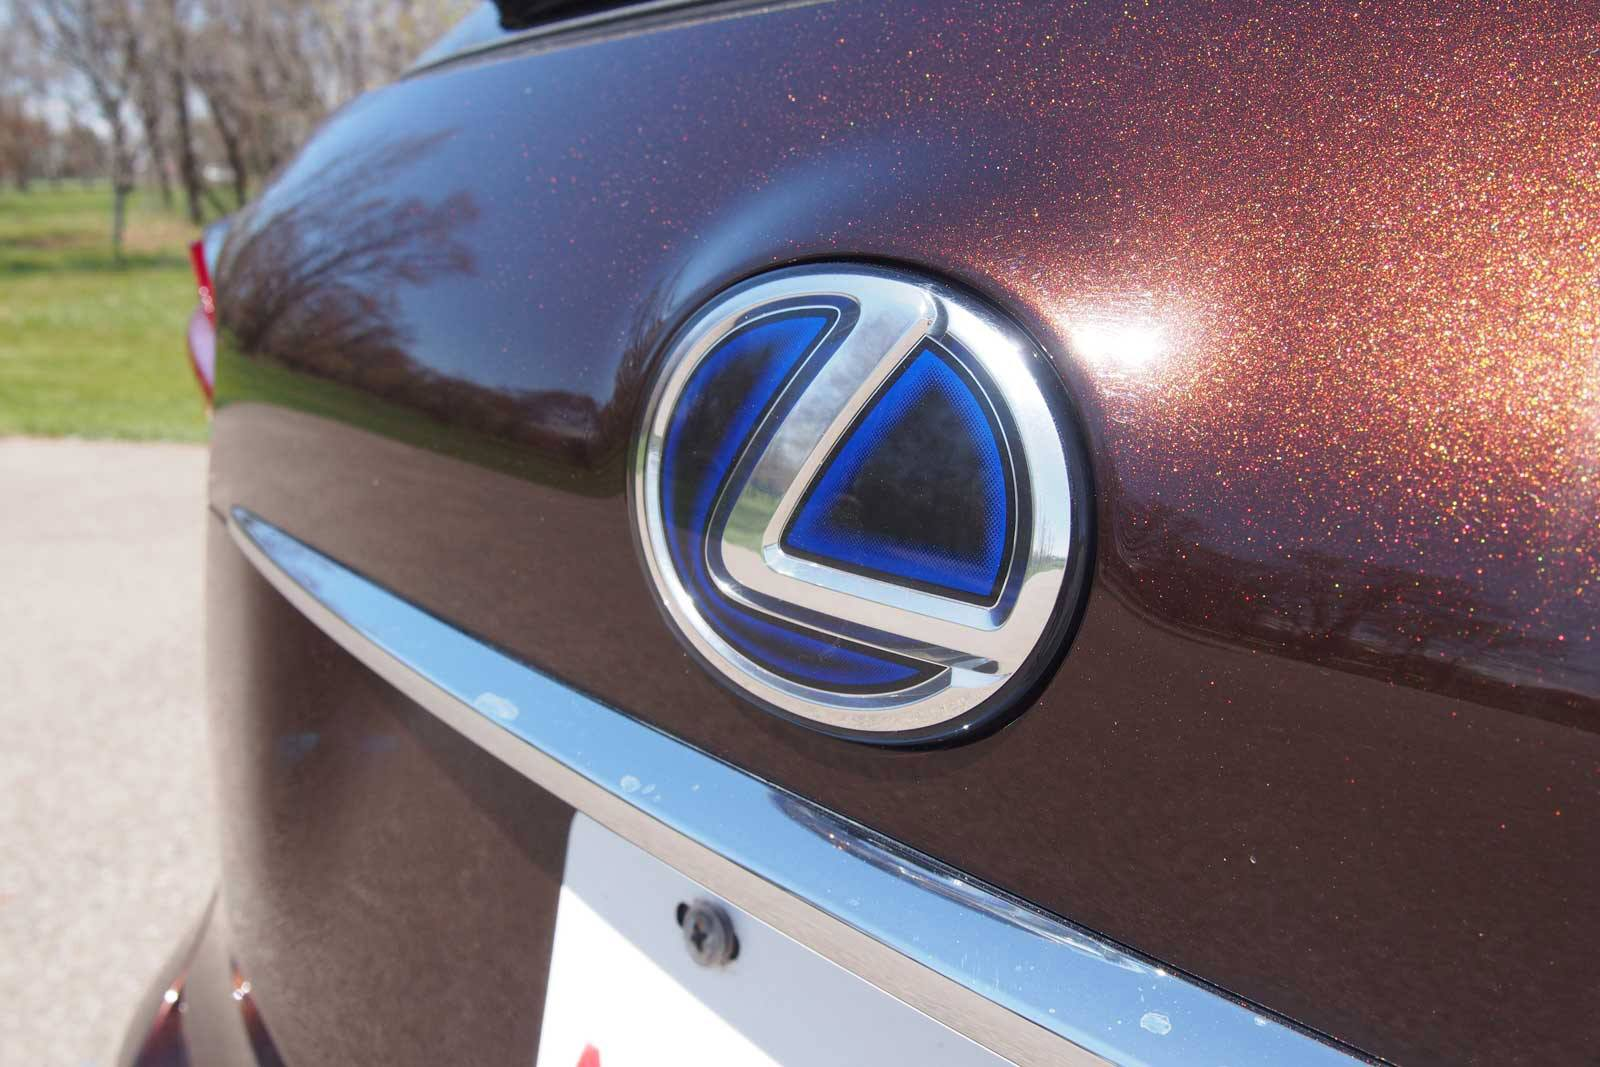 Lexus drops a few spots compared to last year s results finishing with a score of 842 the japanese luxury arm of toyota was tied for fifth last year with